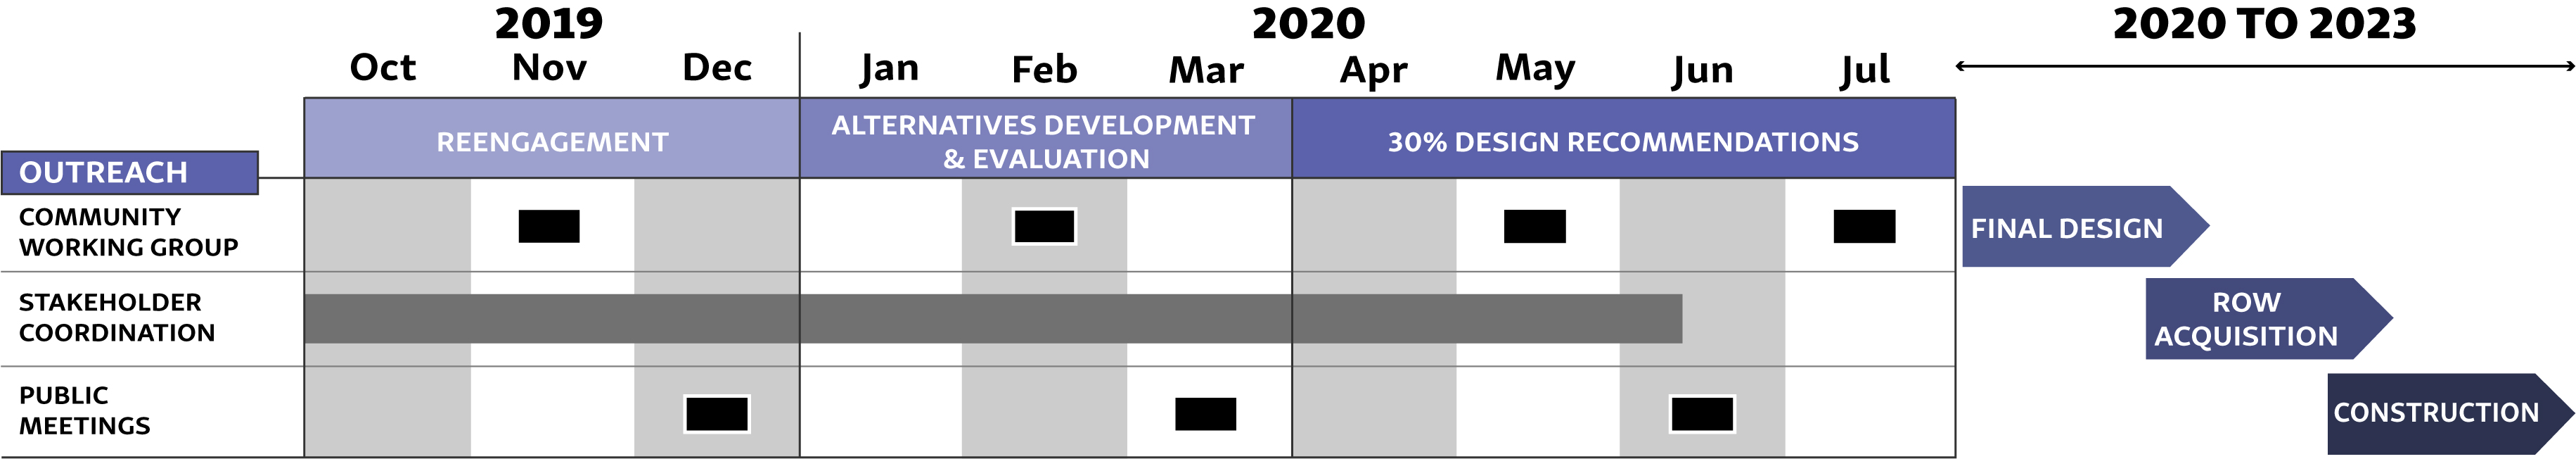 Project timeline for 2019 and 2020